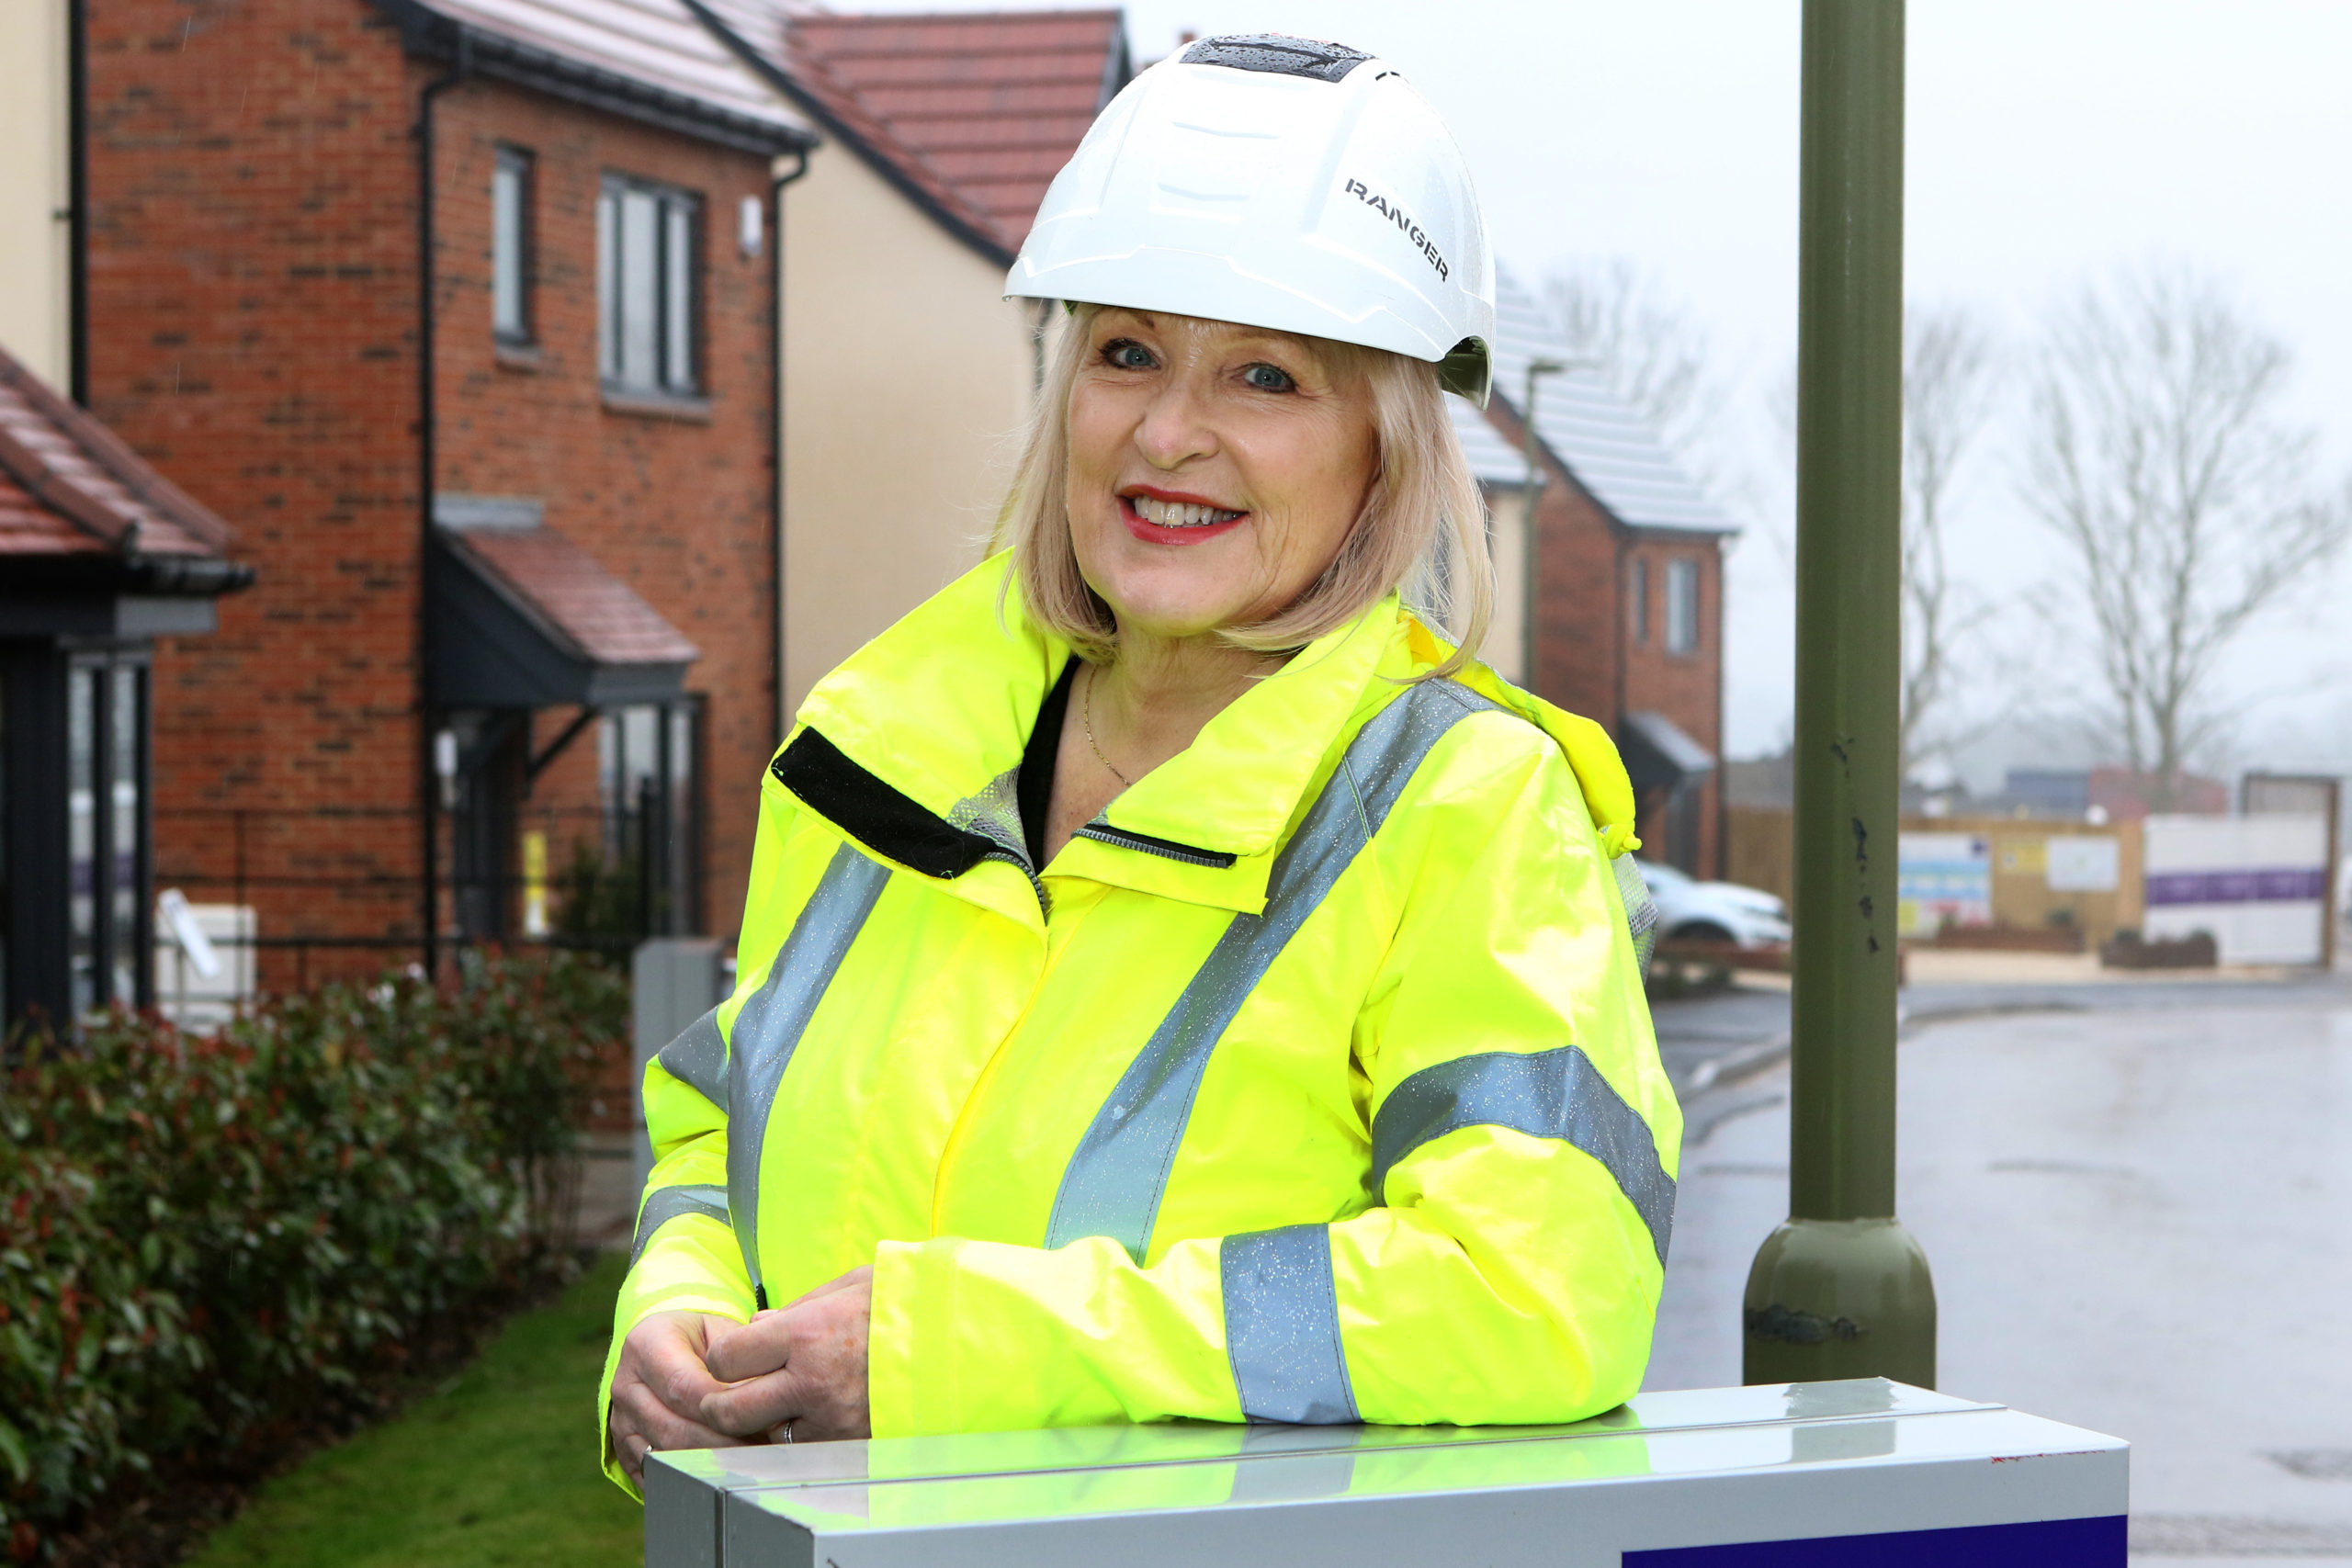 Oxfordshire Mind receives a donation from housebuilder Mactaggart & Mickel